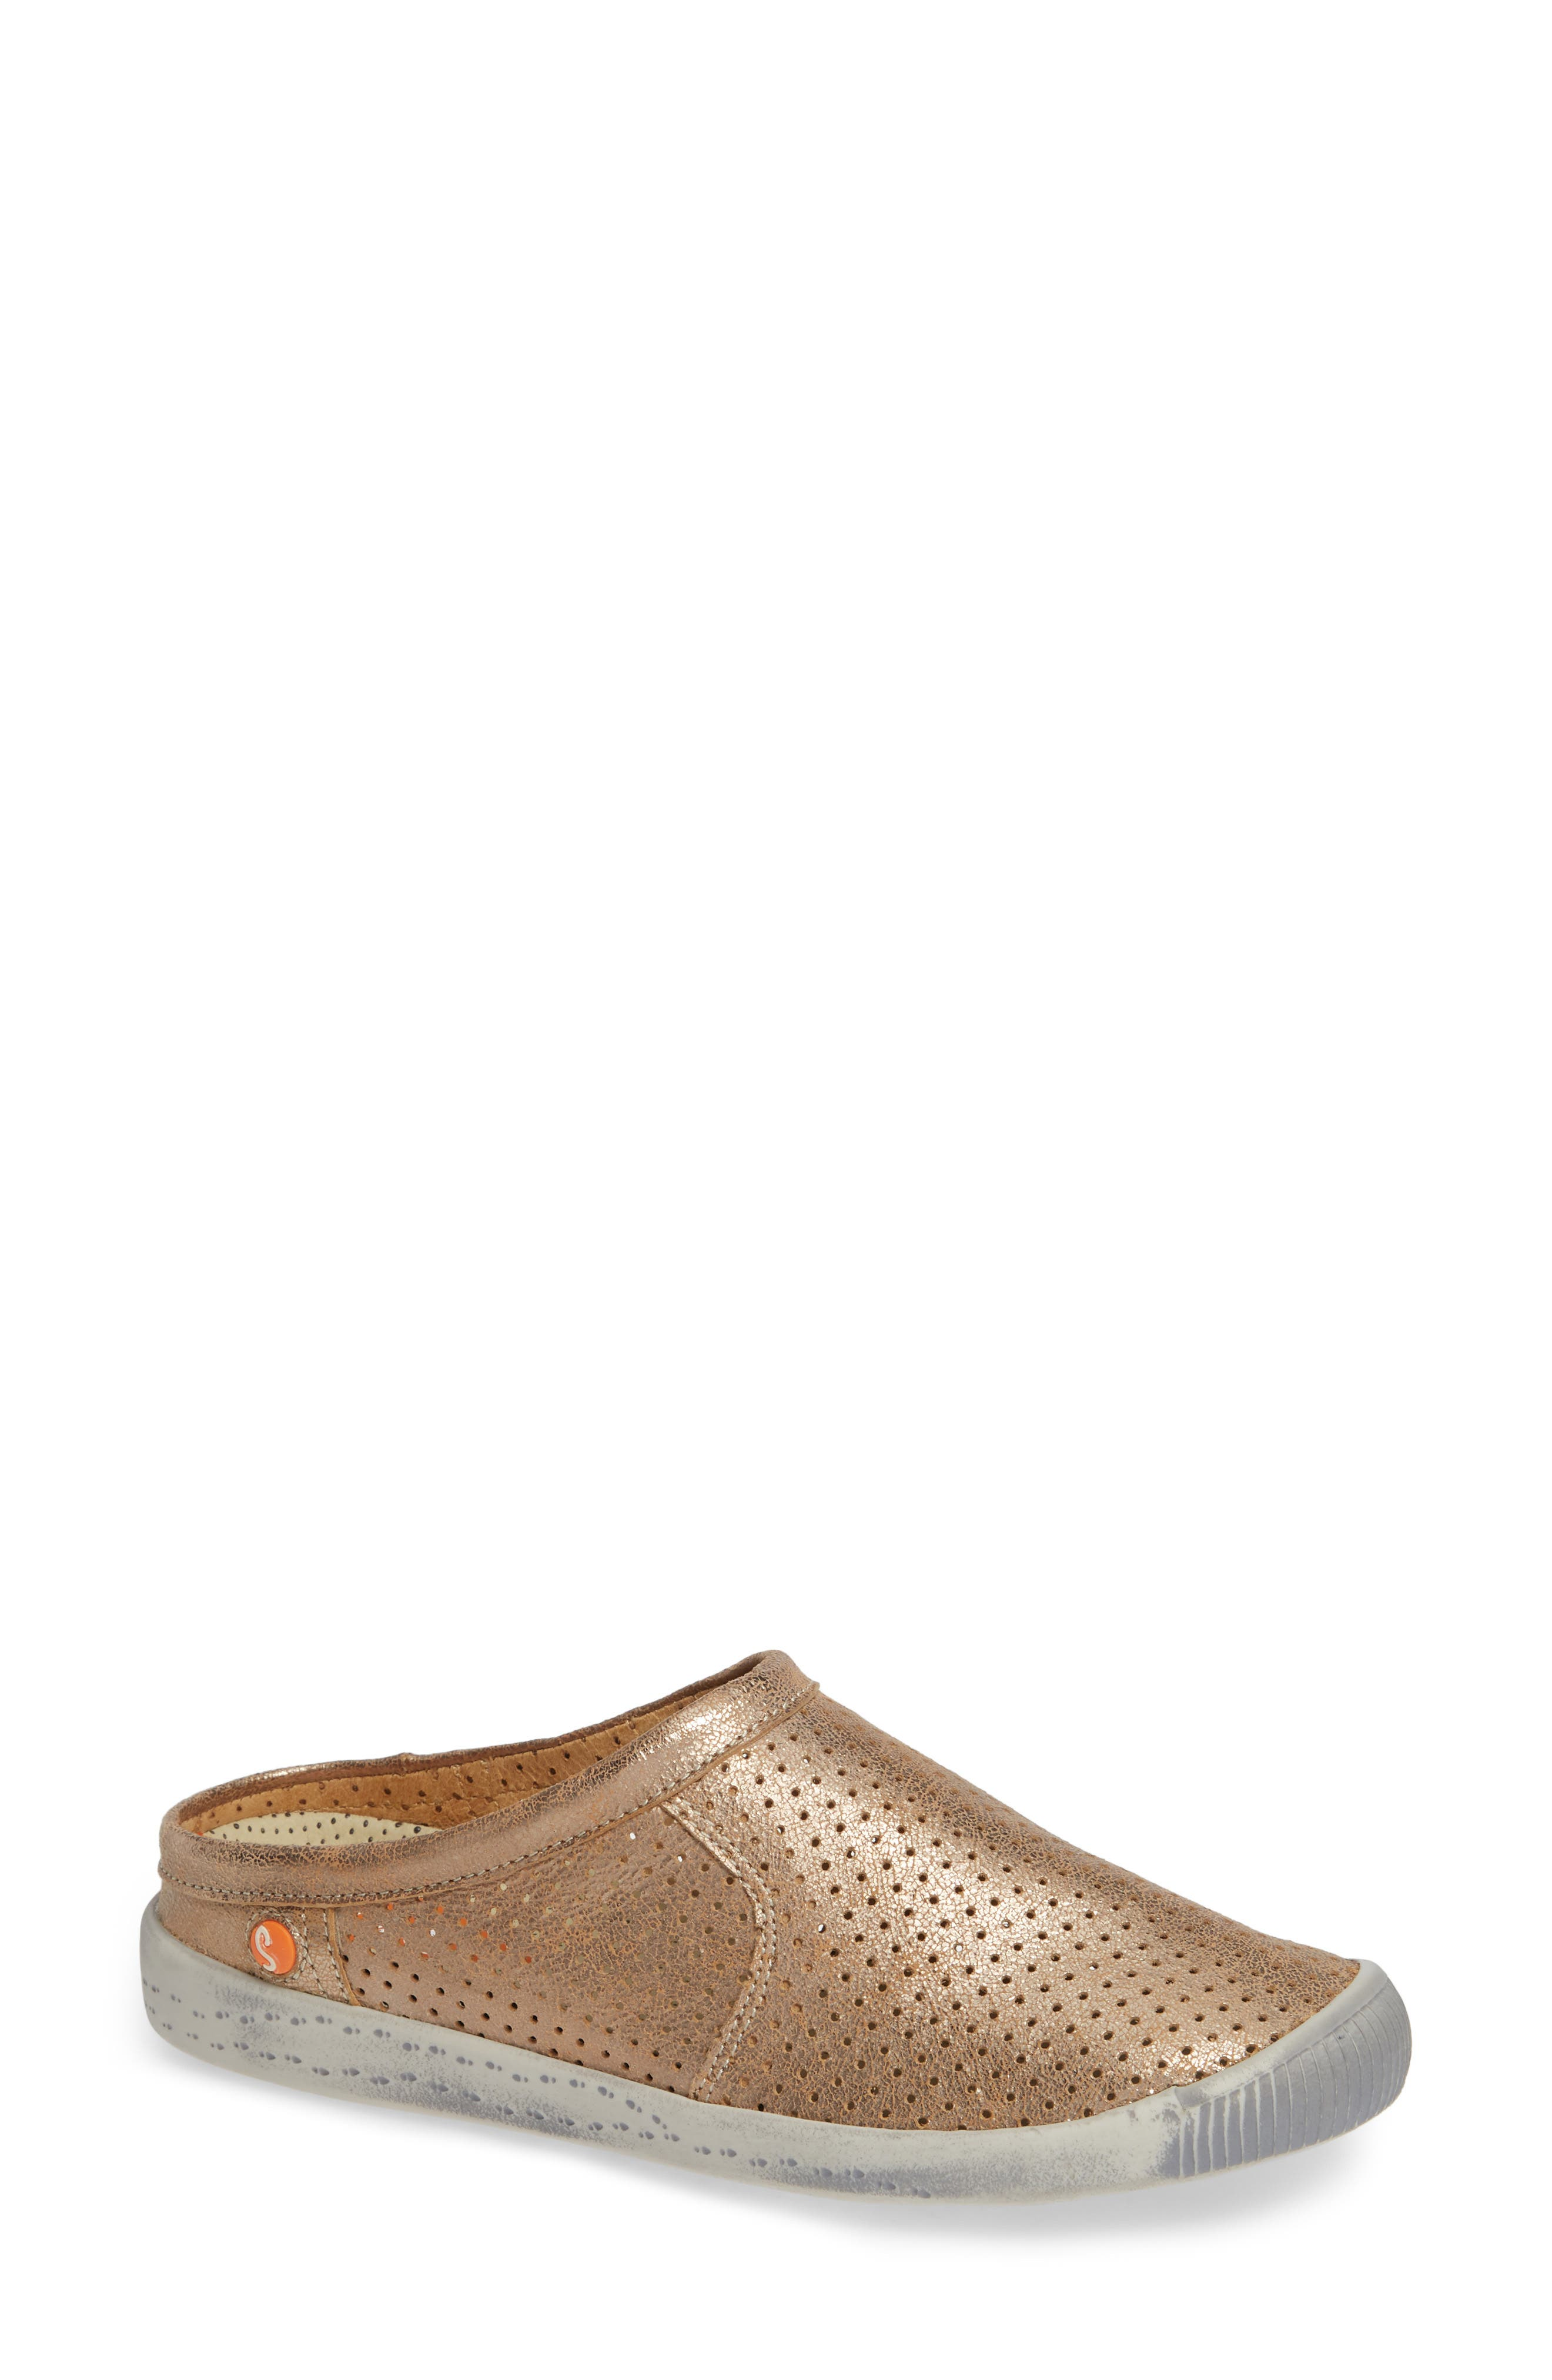 Softinos By Fly London Ima Sneaker Mule, Beige